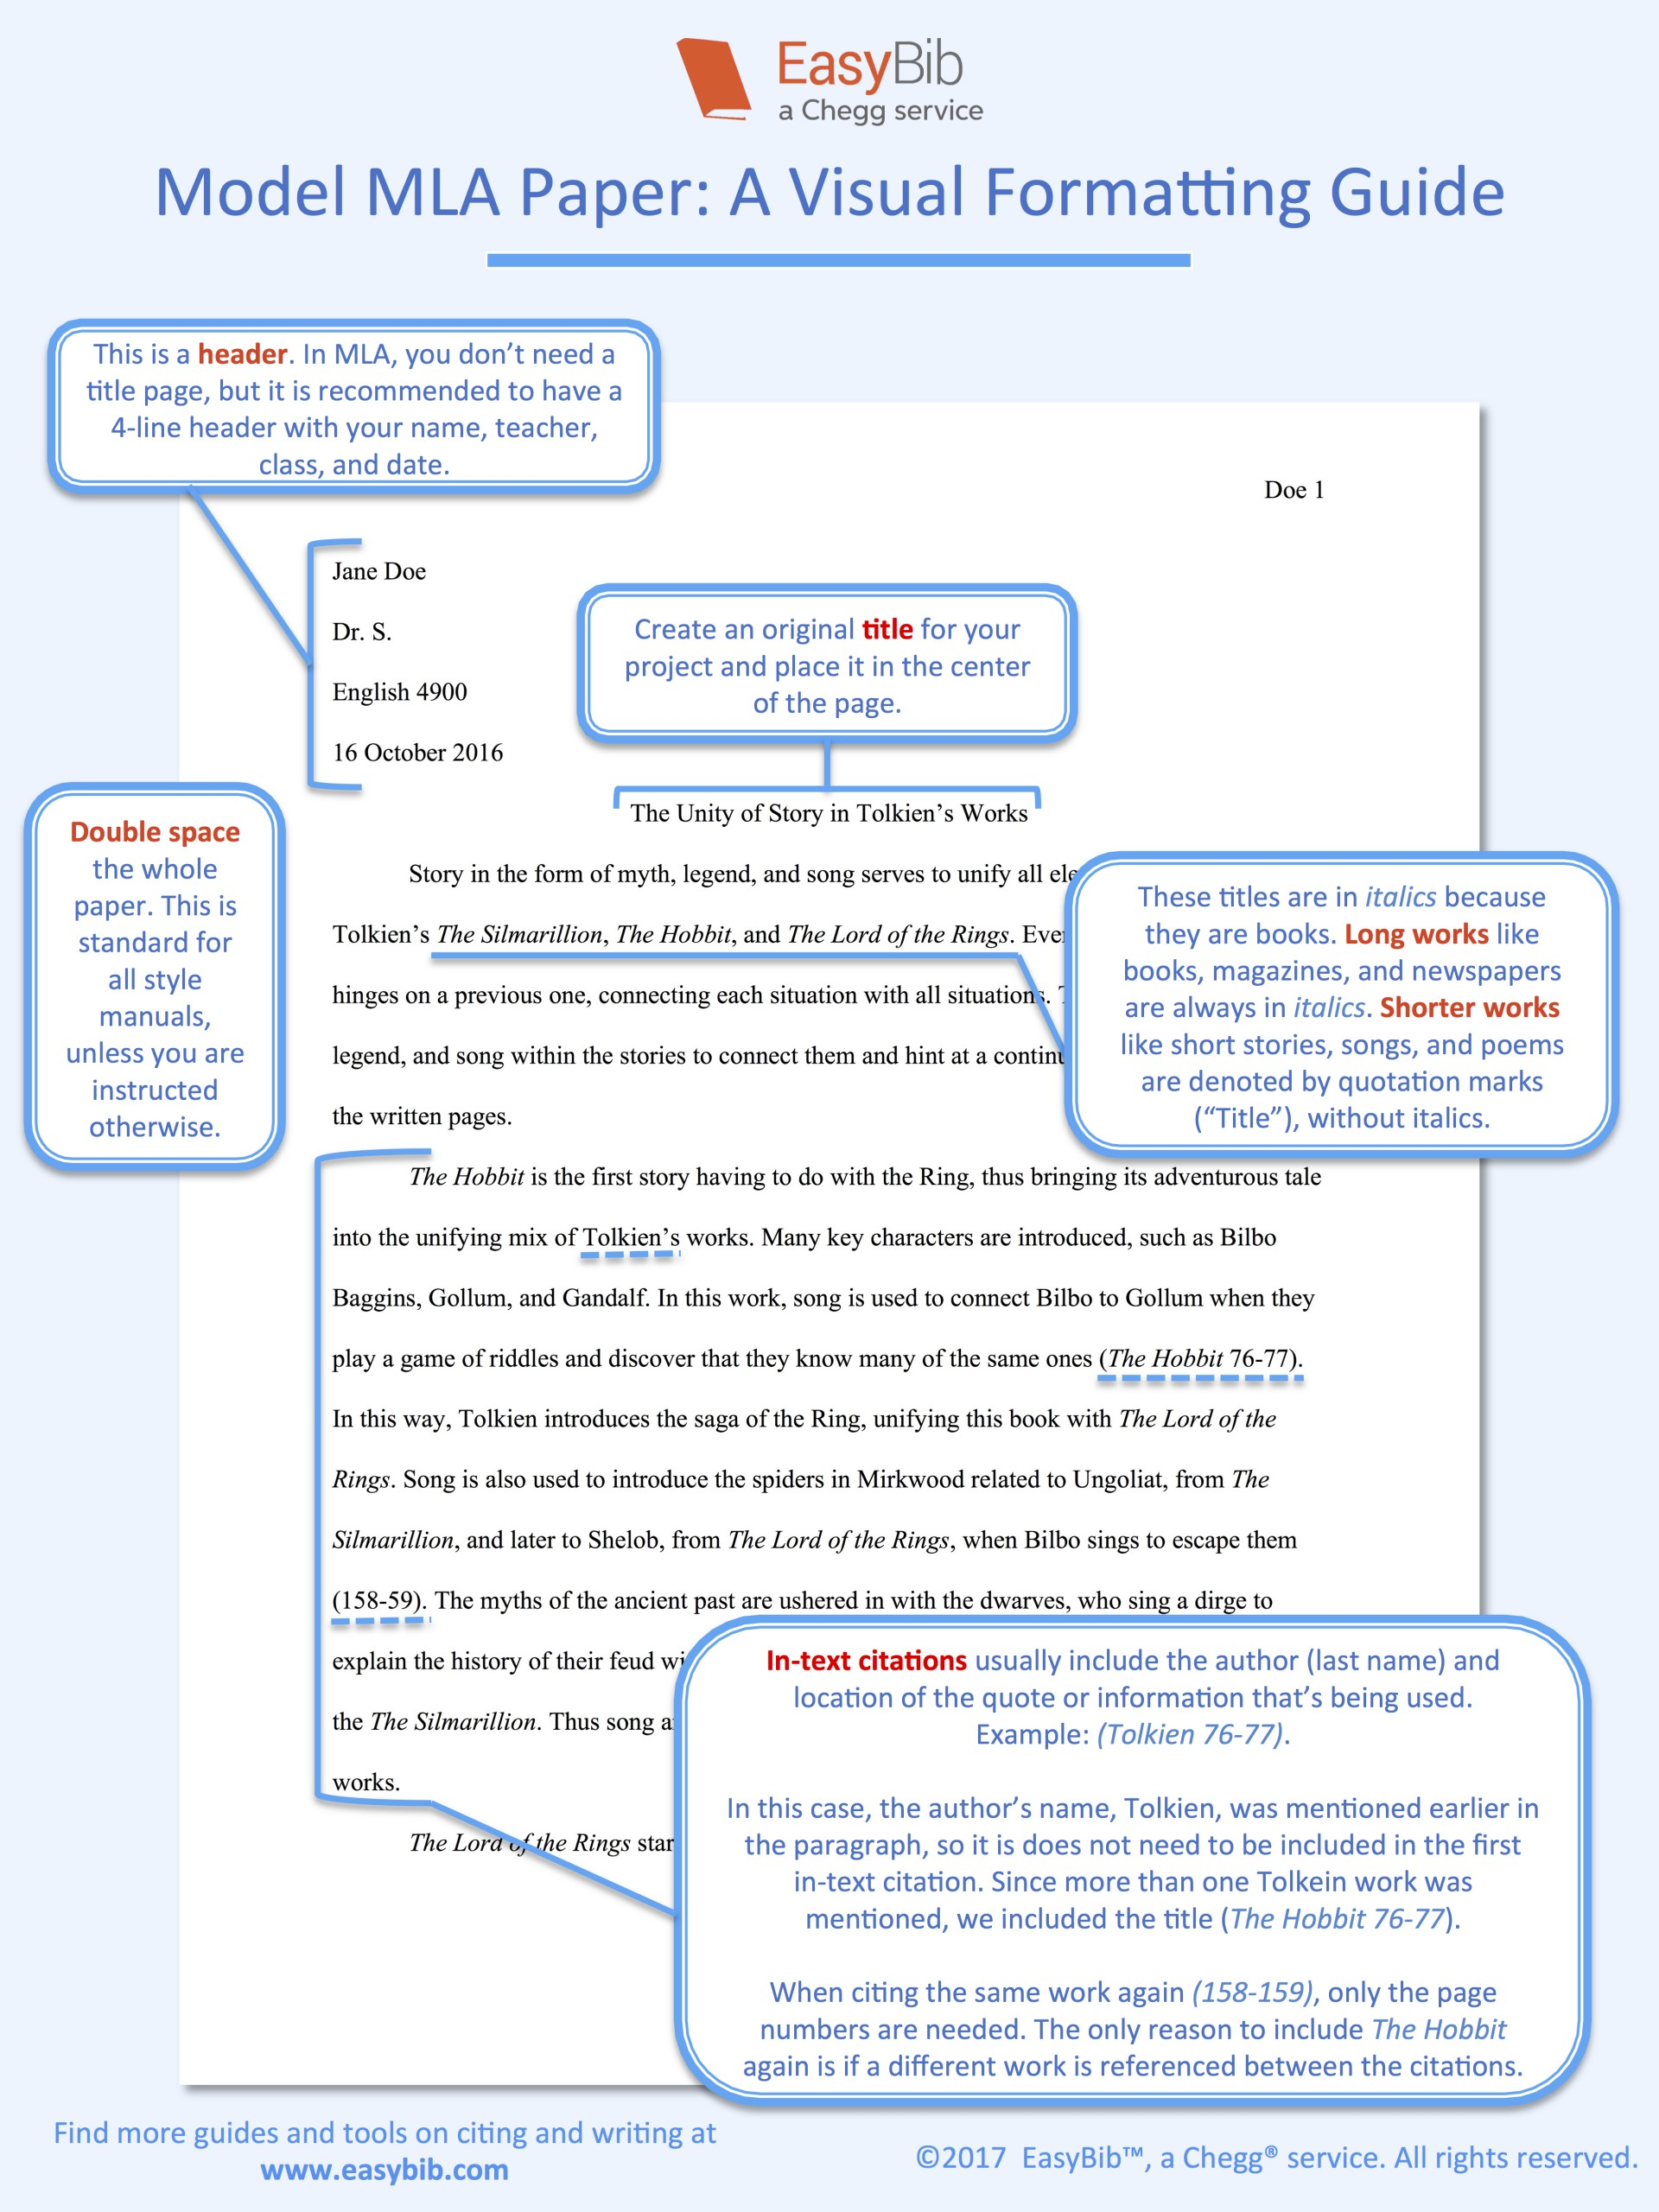 009 Research Paper Model Mla Style Exceptional Papers Format In Text Citation Sample 1920